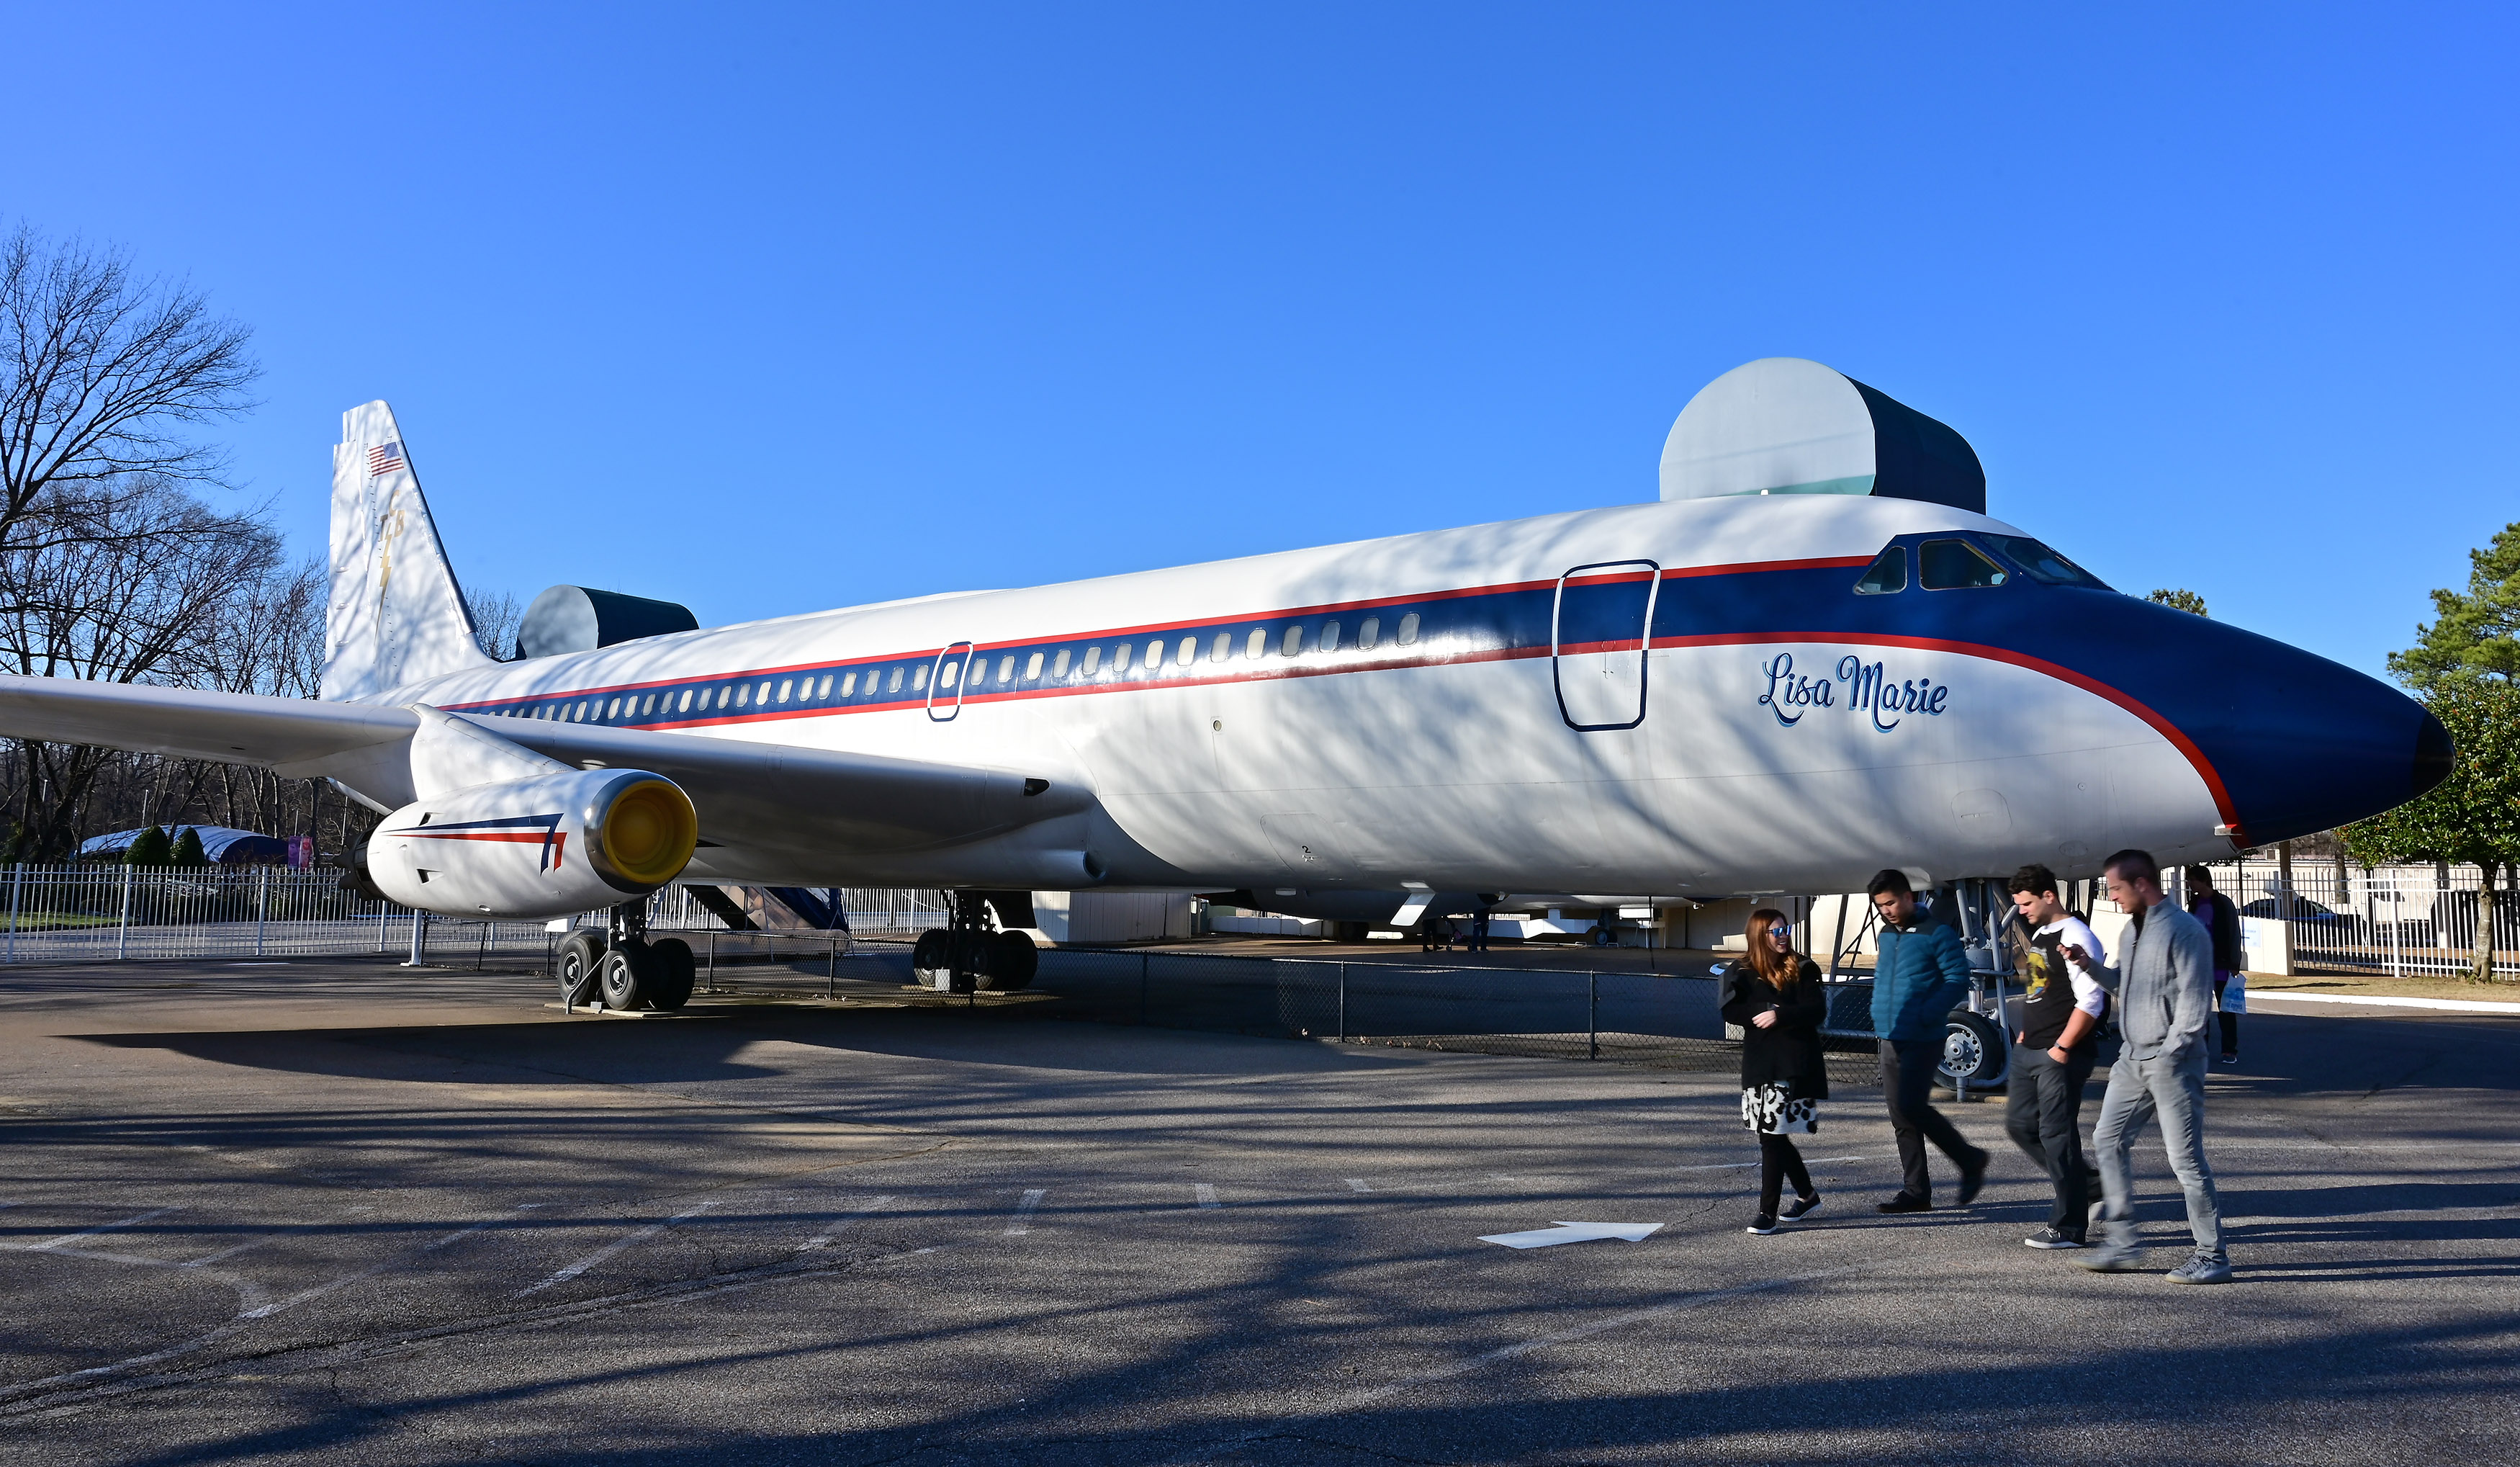 The Convair 880 passenger aircraft that was purchased by musician Elvis Presley for transportation to and from live concerts across the U.S. in the 1970s is on display at Graceland in Memphis, Tennessee. The aircraft, formerly in use by Delta Air Lines, cost the singer $250,000, and he spent an additional $800,000 to customize it. Photo by David Tulis.